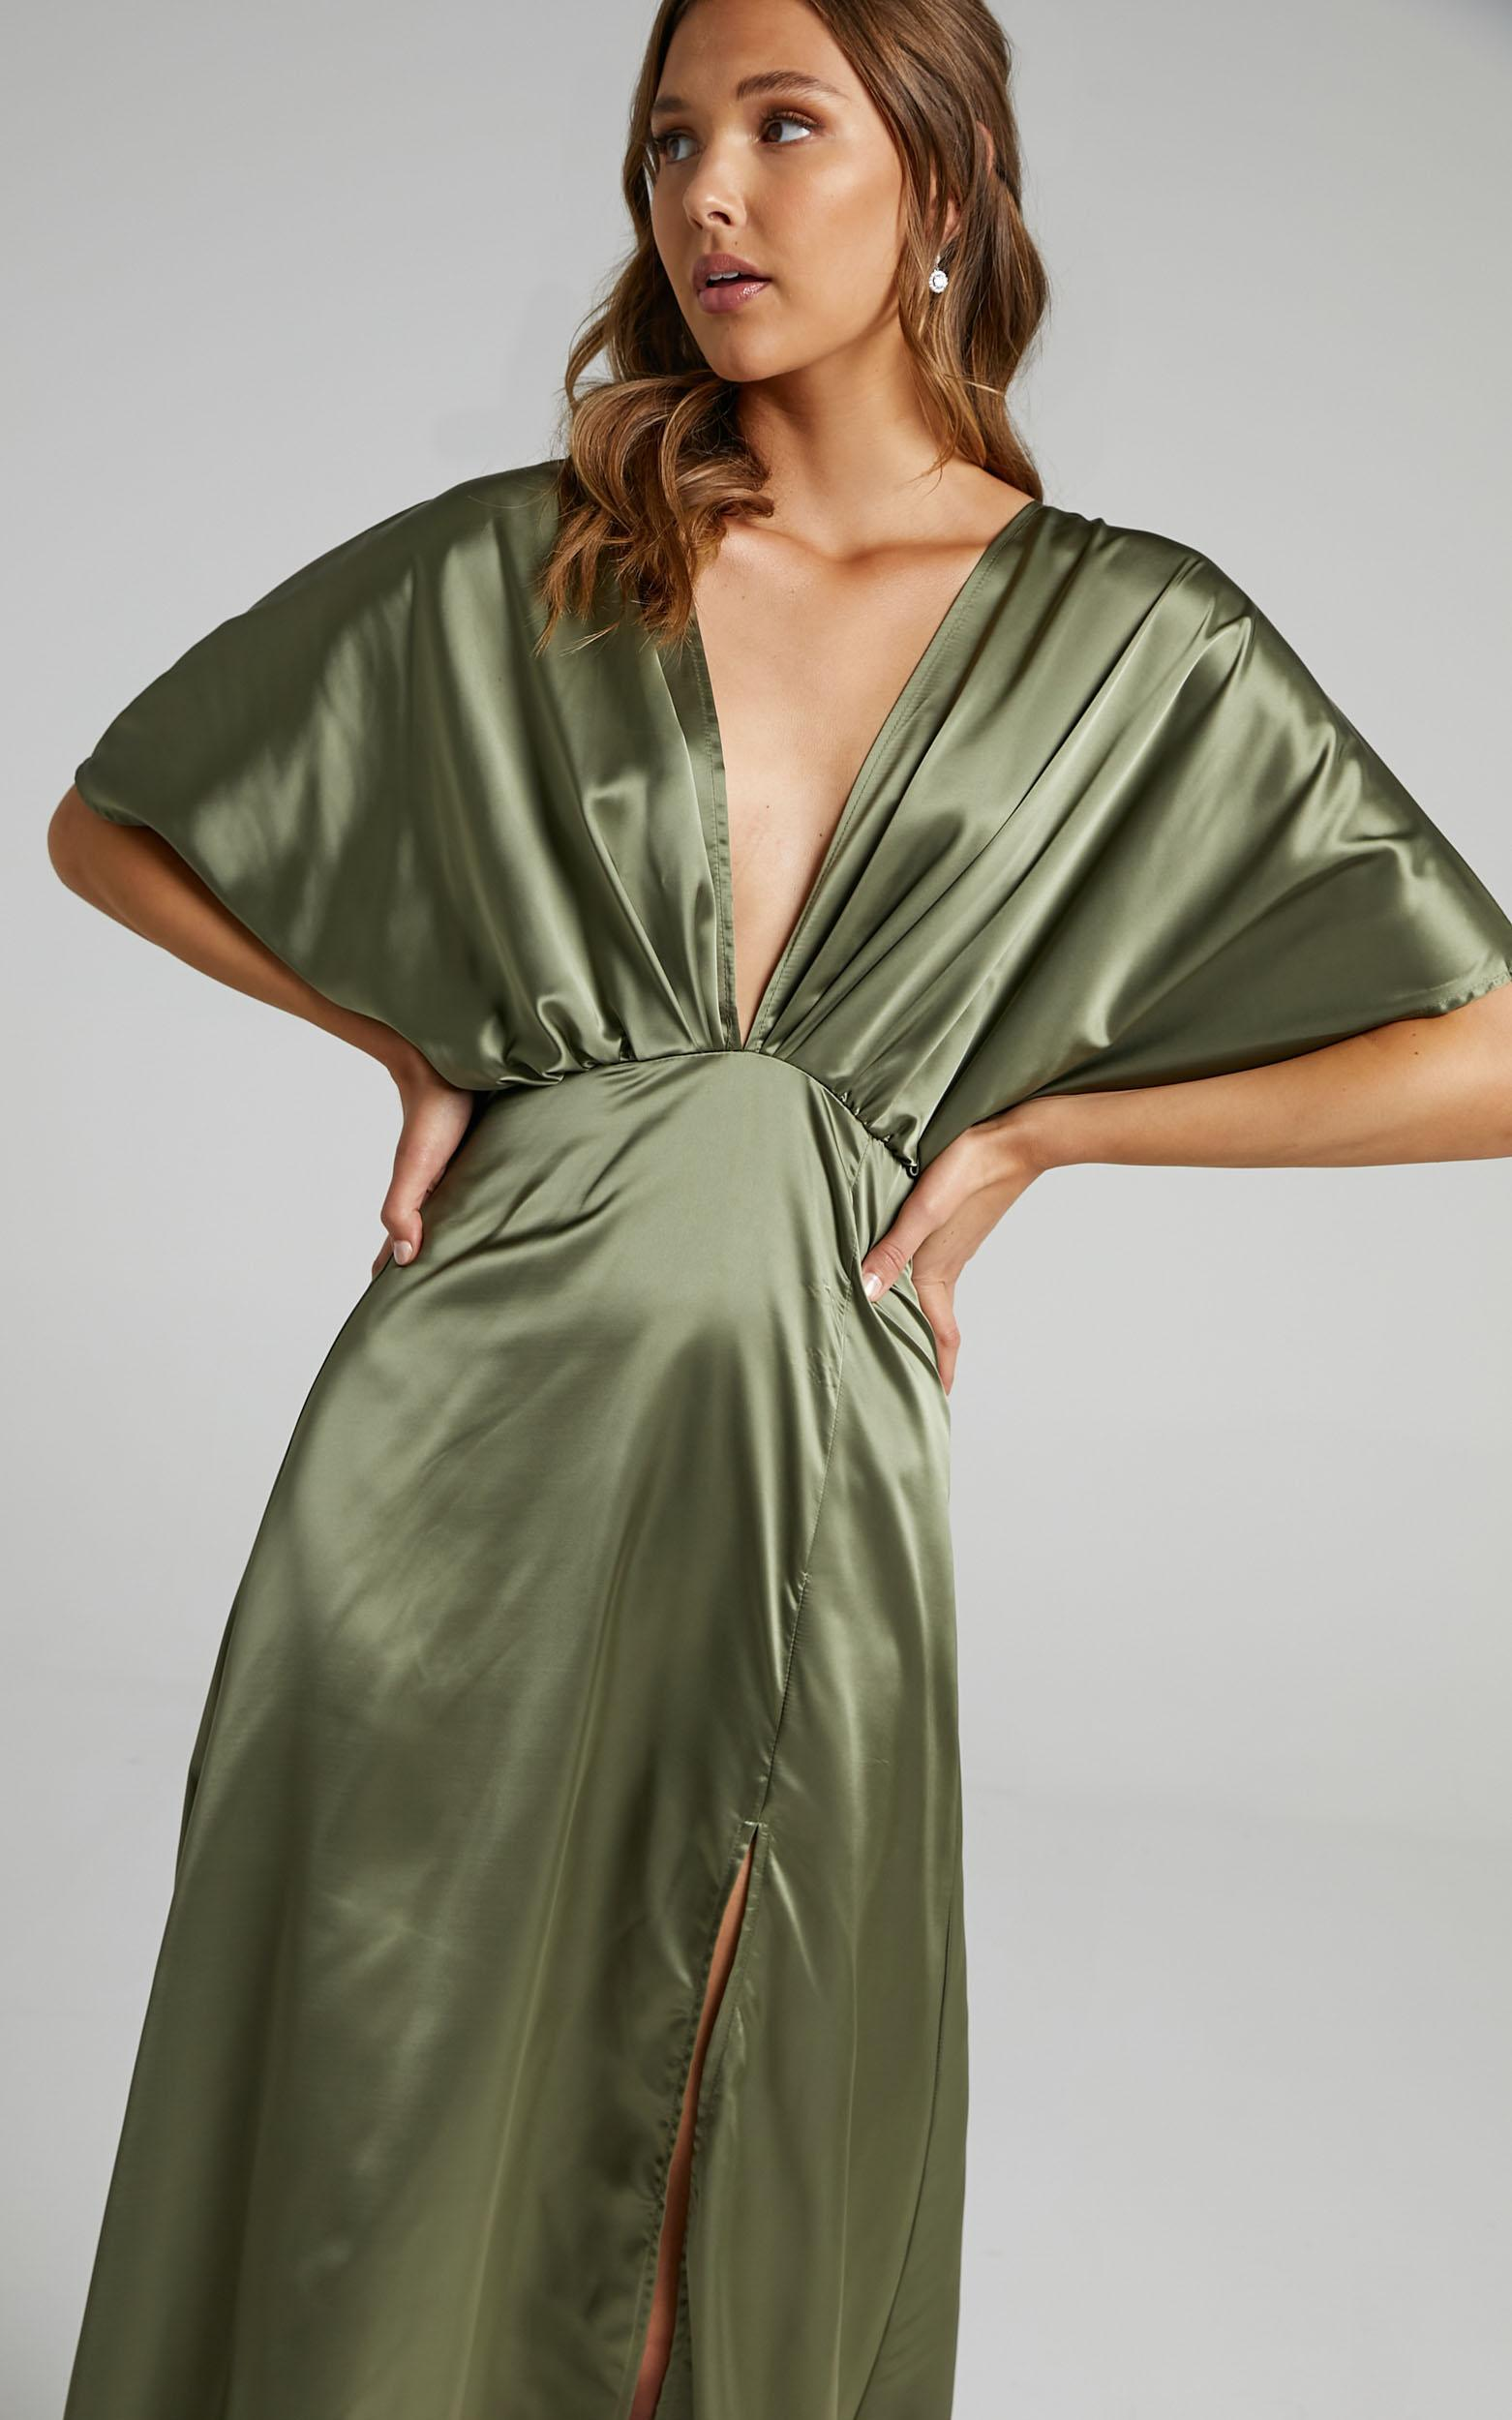 The Day of All Days Dress in Olive - 06, GRN1, hi-res image number null